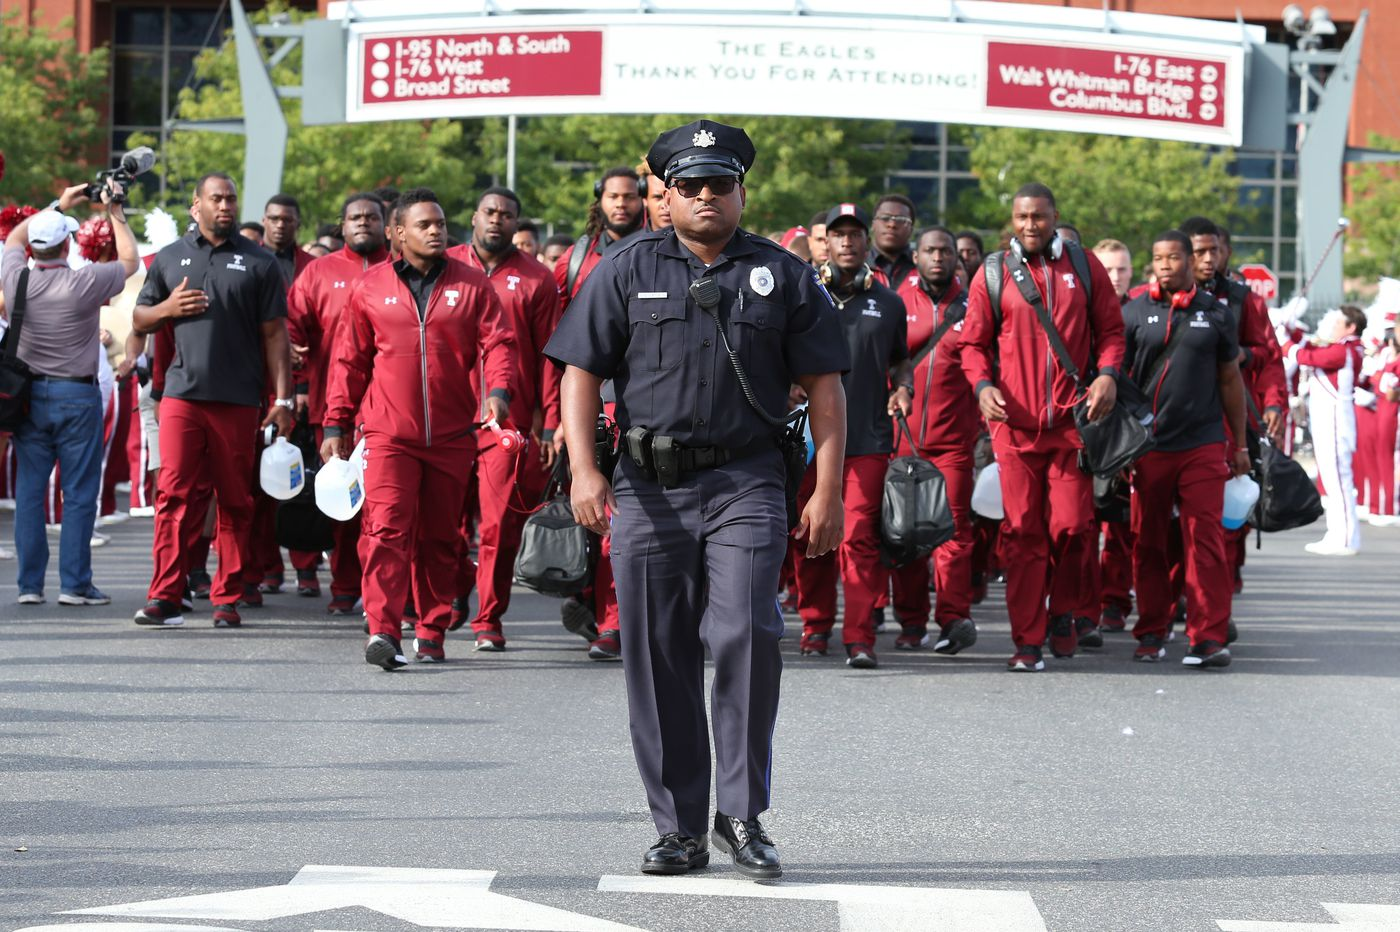 Officer James Jones was a Temple football star in his own unique way